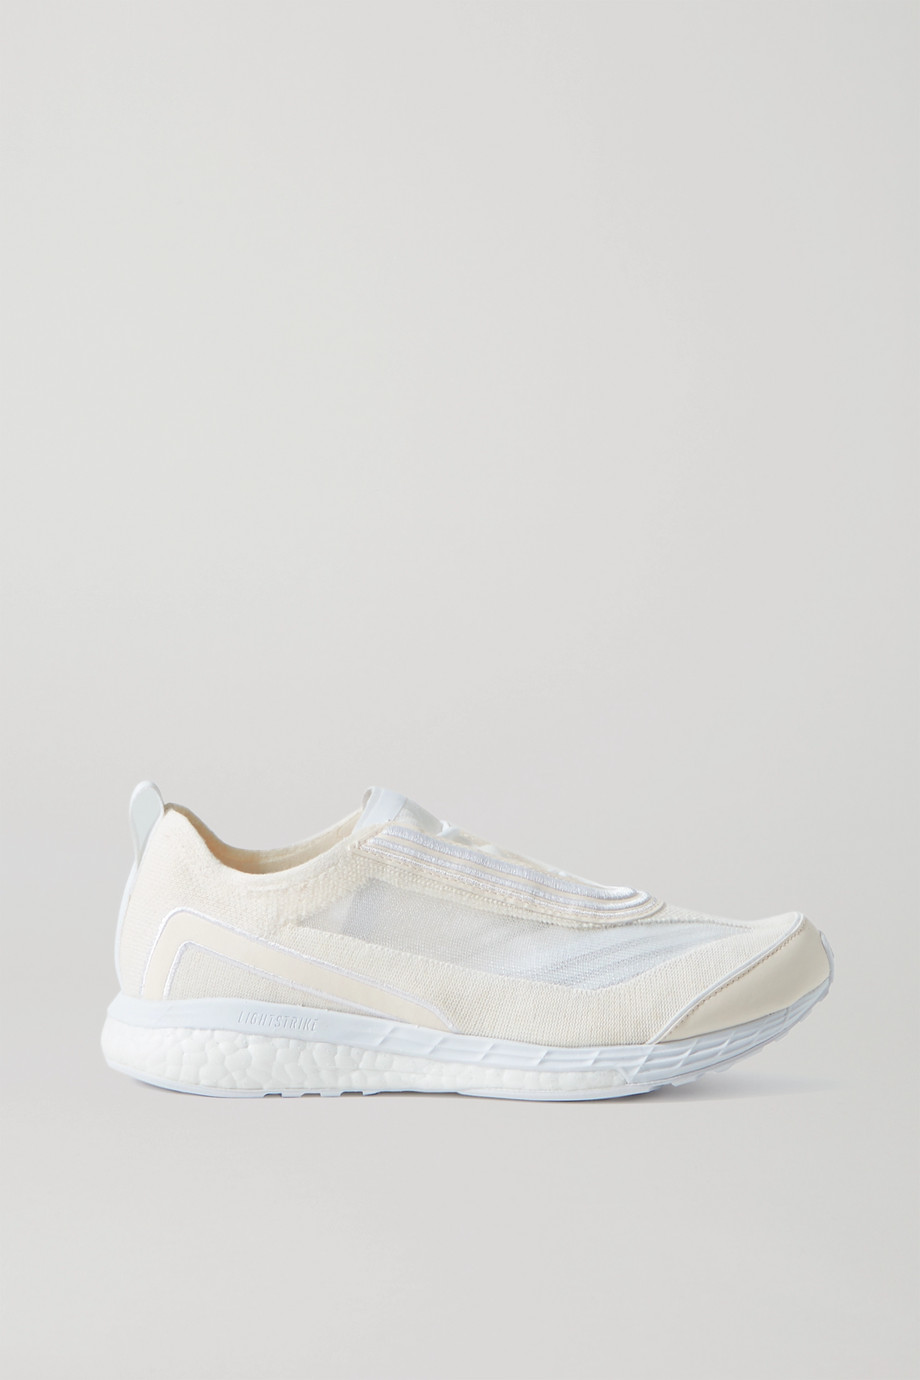 ADIDAS BY STELLA MCCARTNEY Boston mesh and Primeknit sneakers